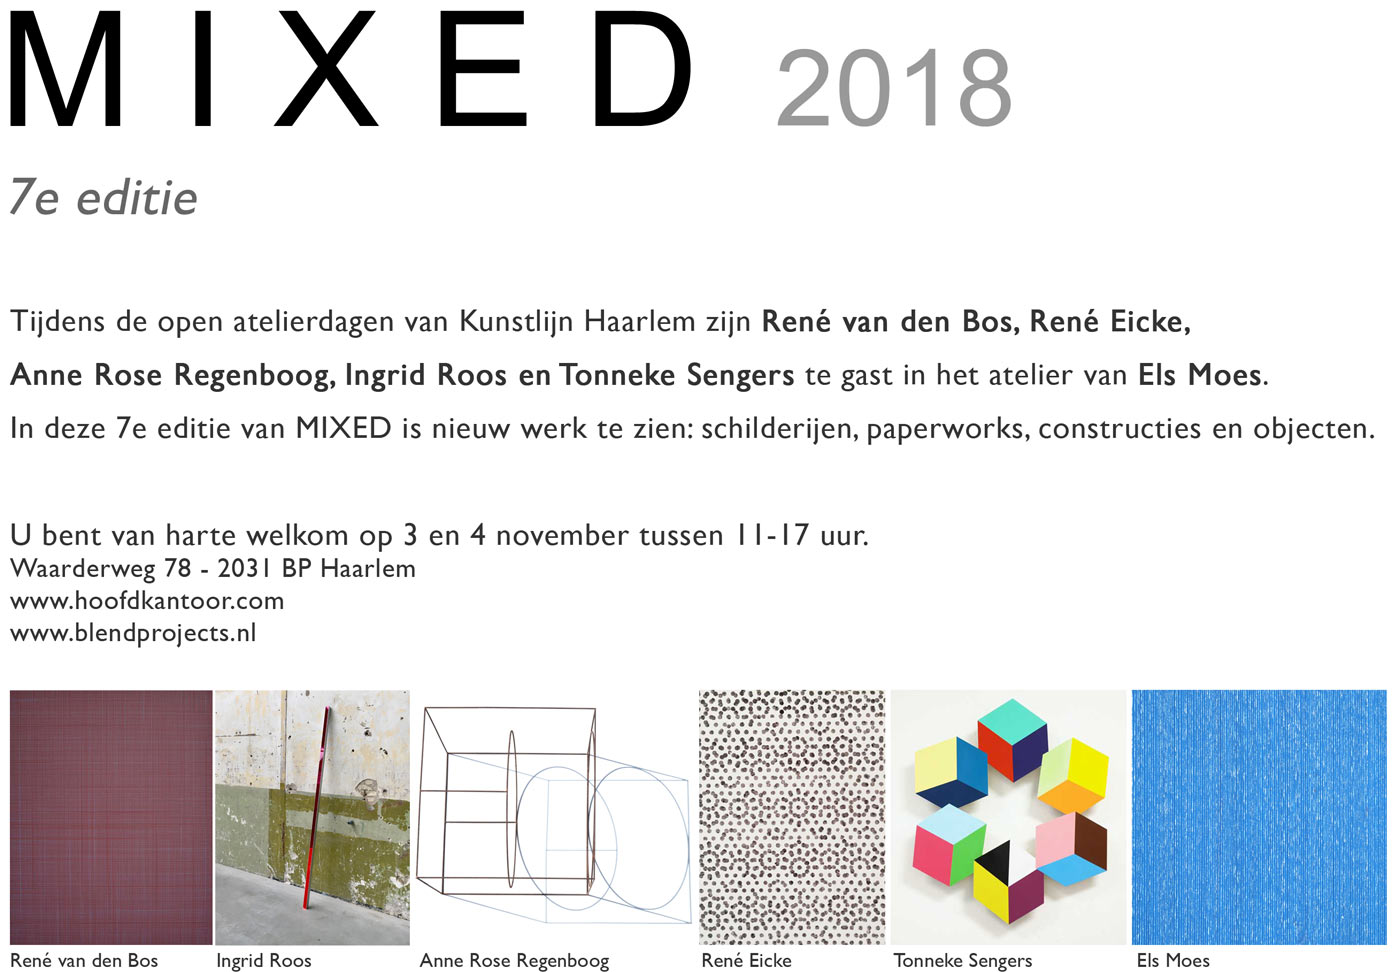 Blend Projects, MIXED 2018